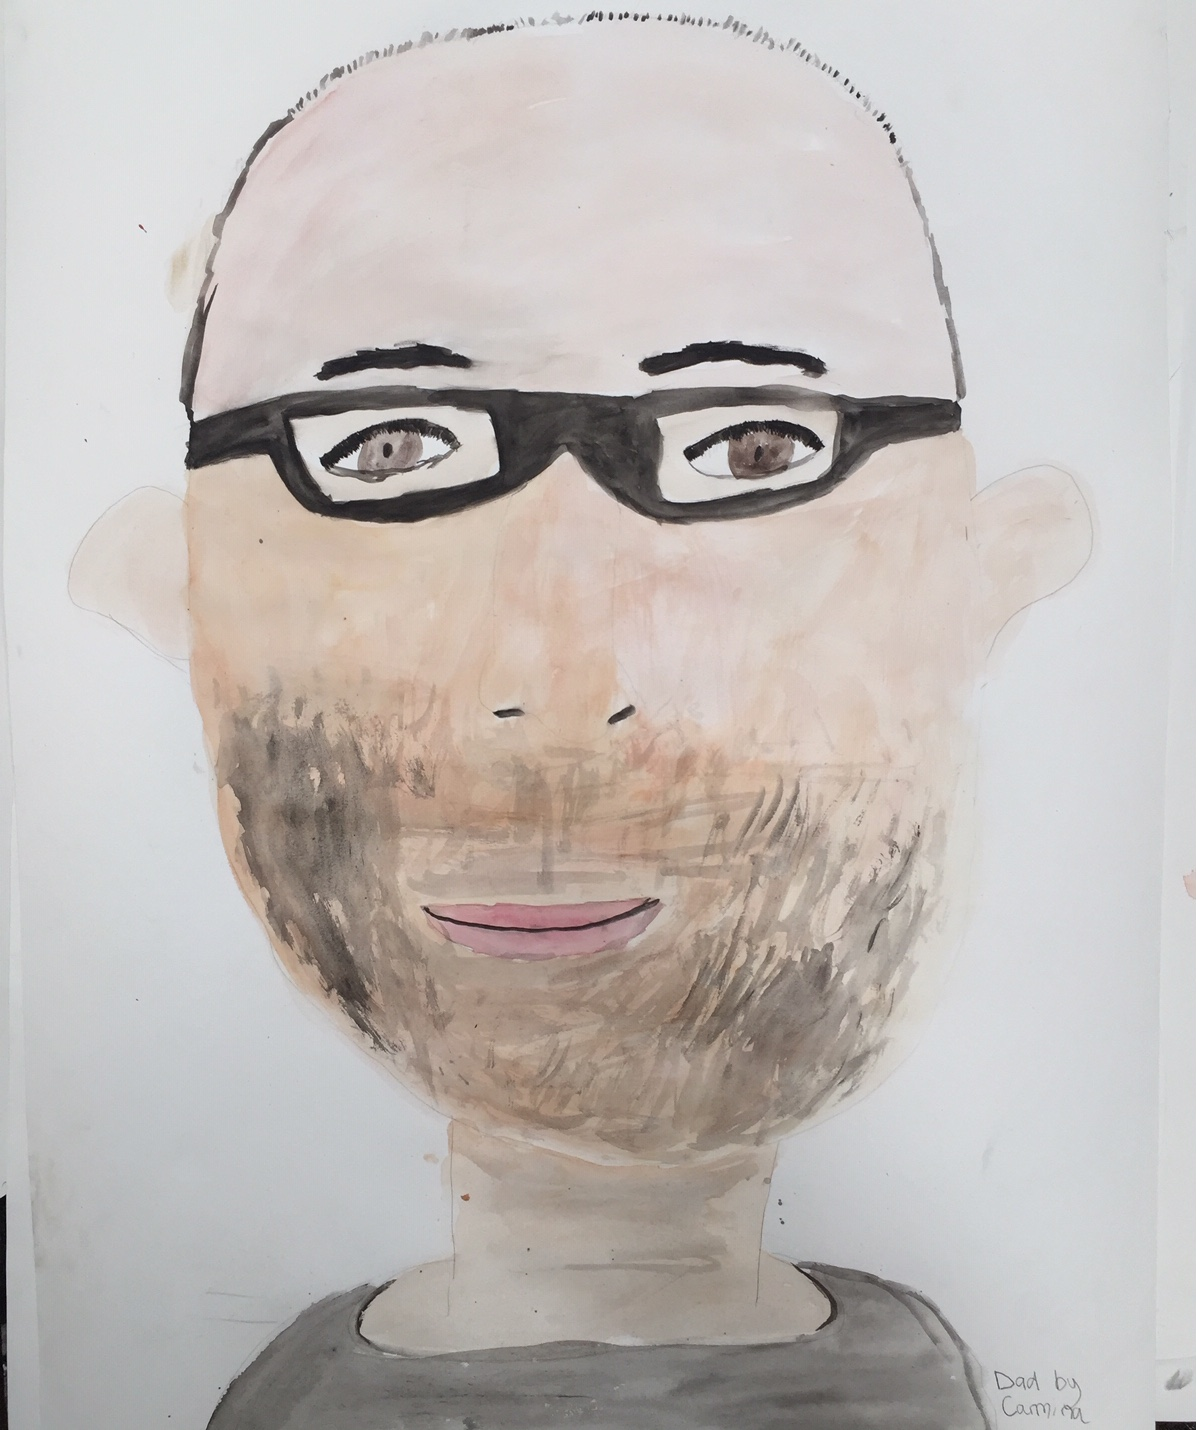 One of the community portraits made at the workshop